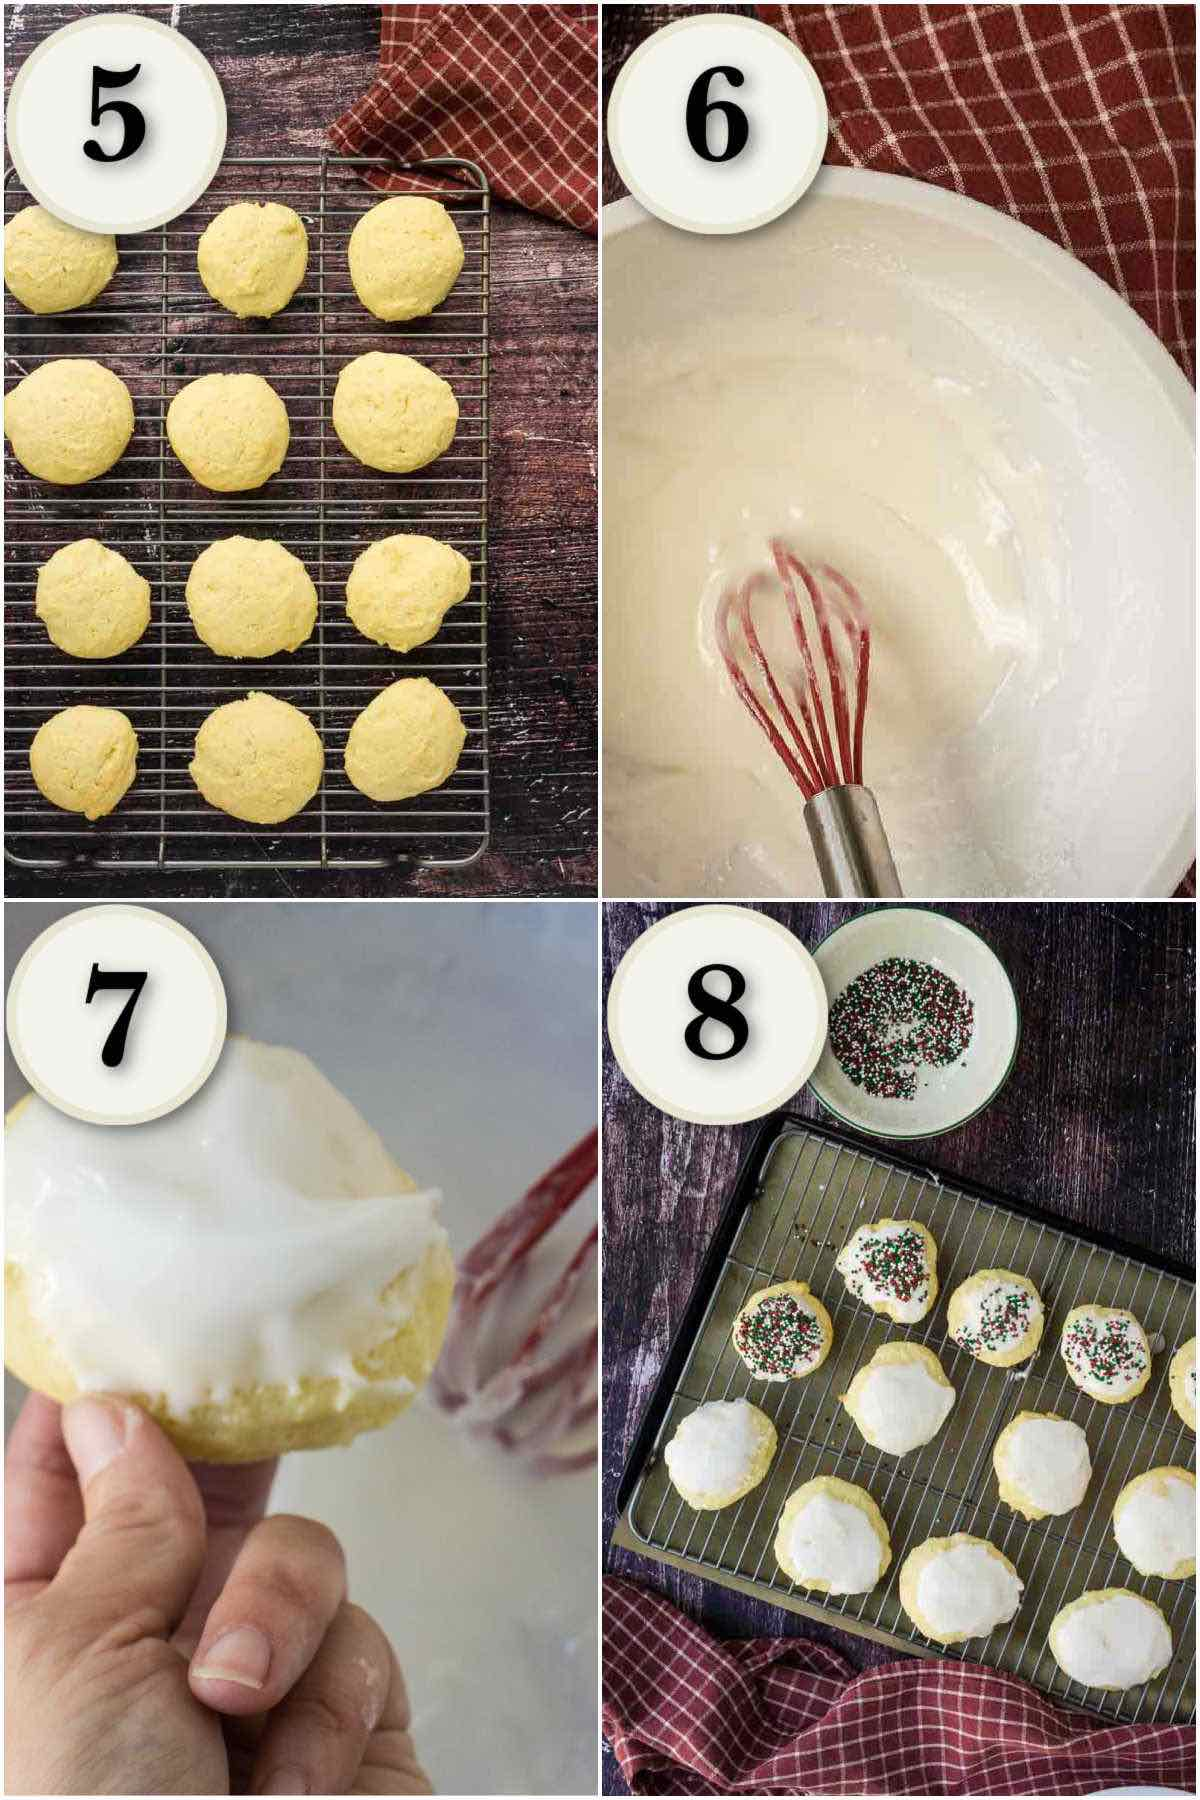 grid of 4 images- baked cooking, mixing glaze, finished sour cream cookies